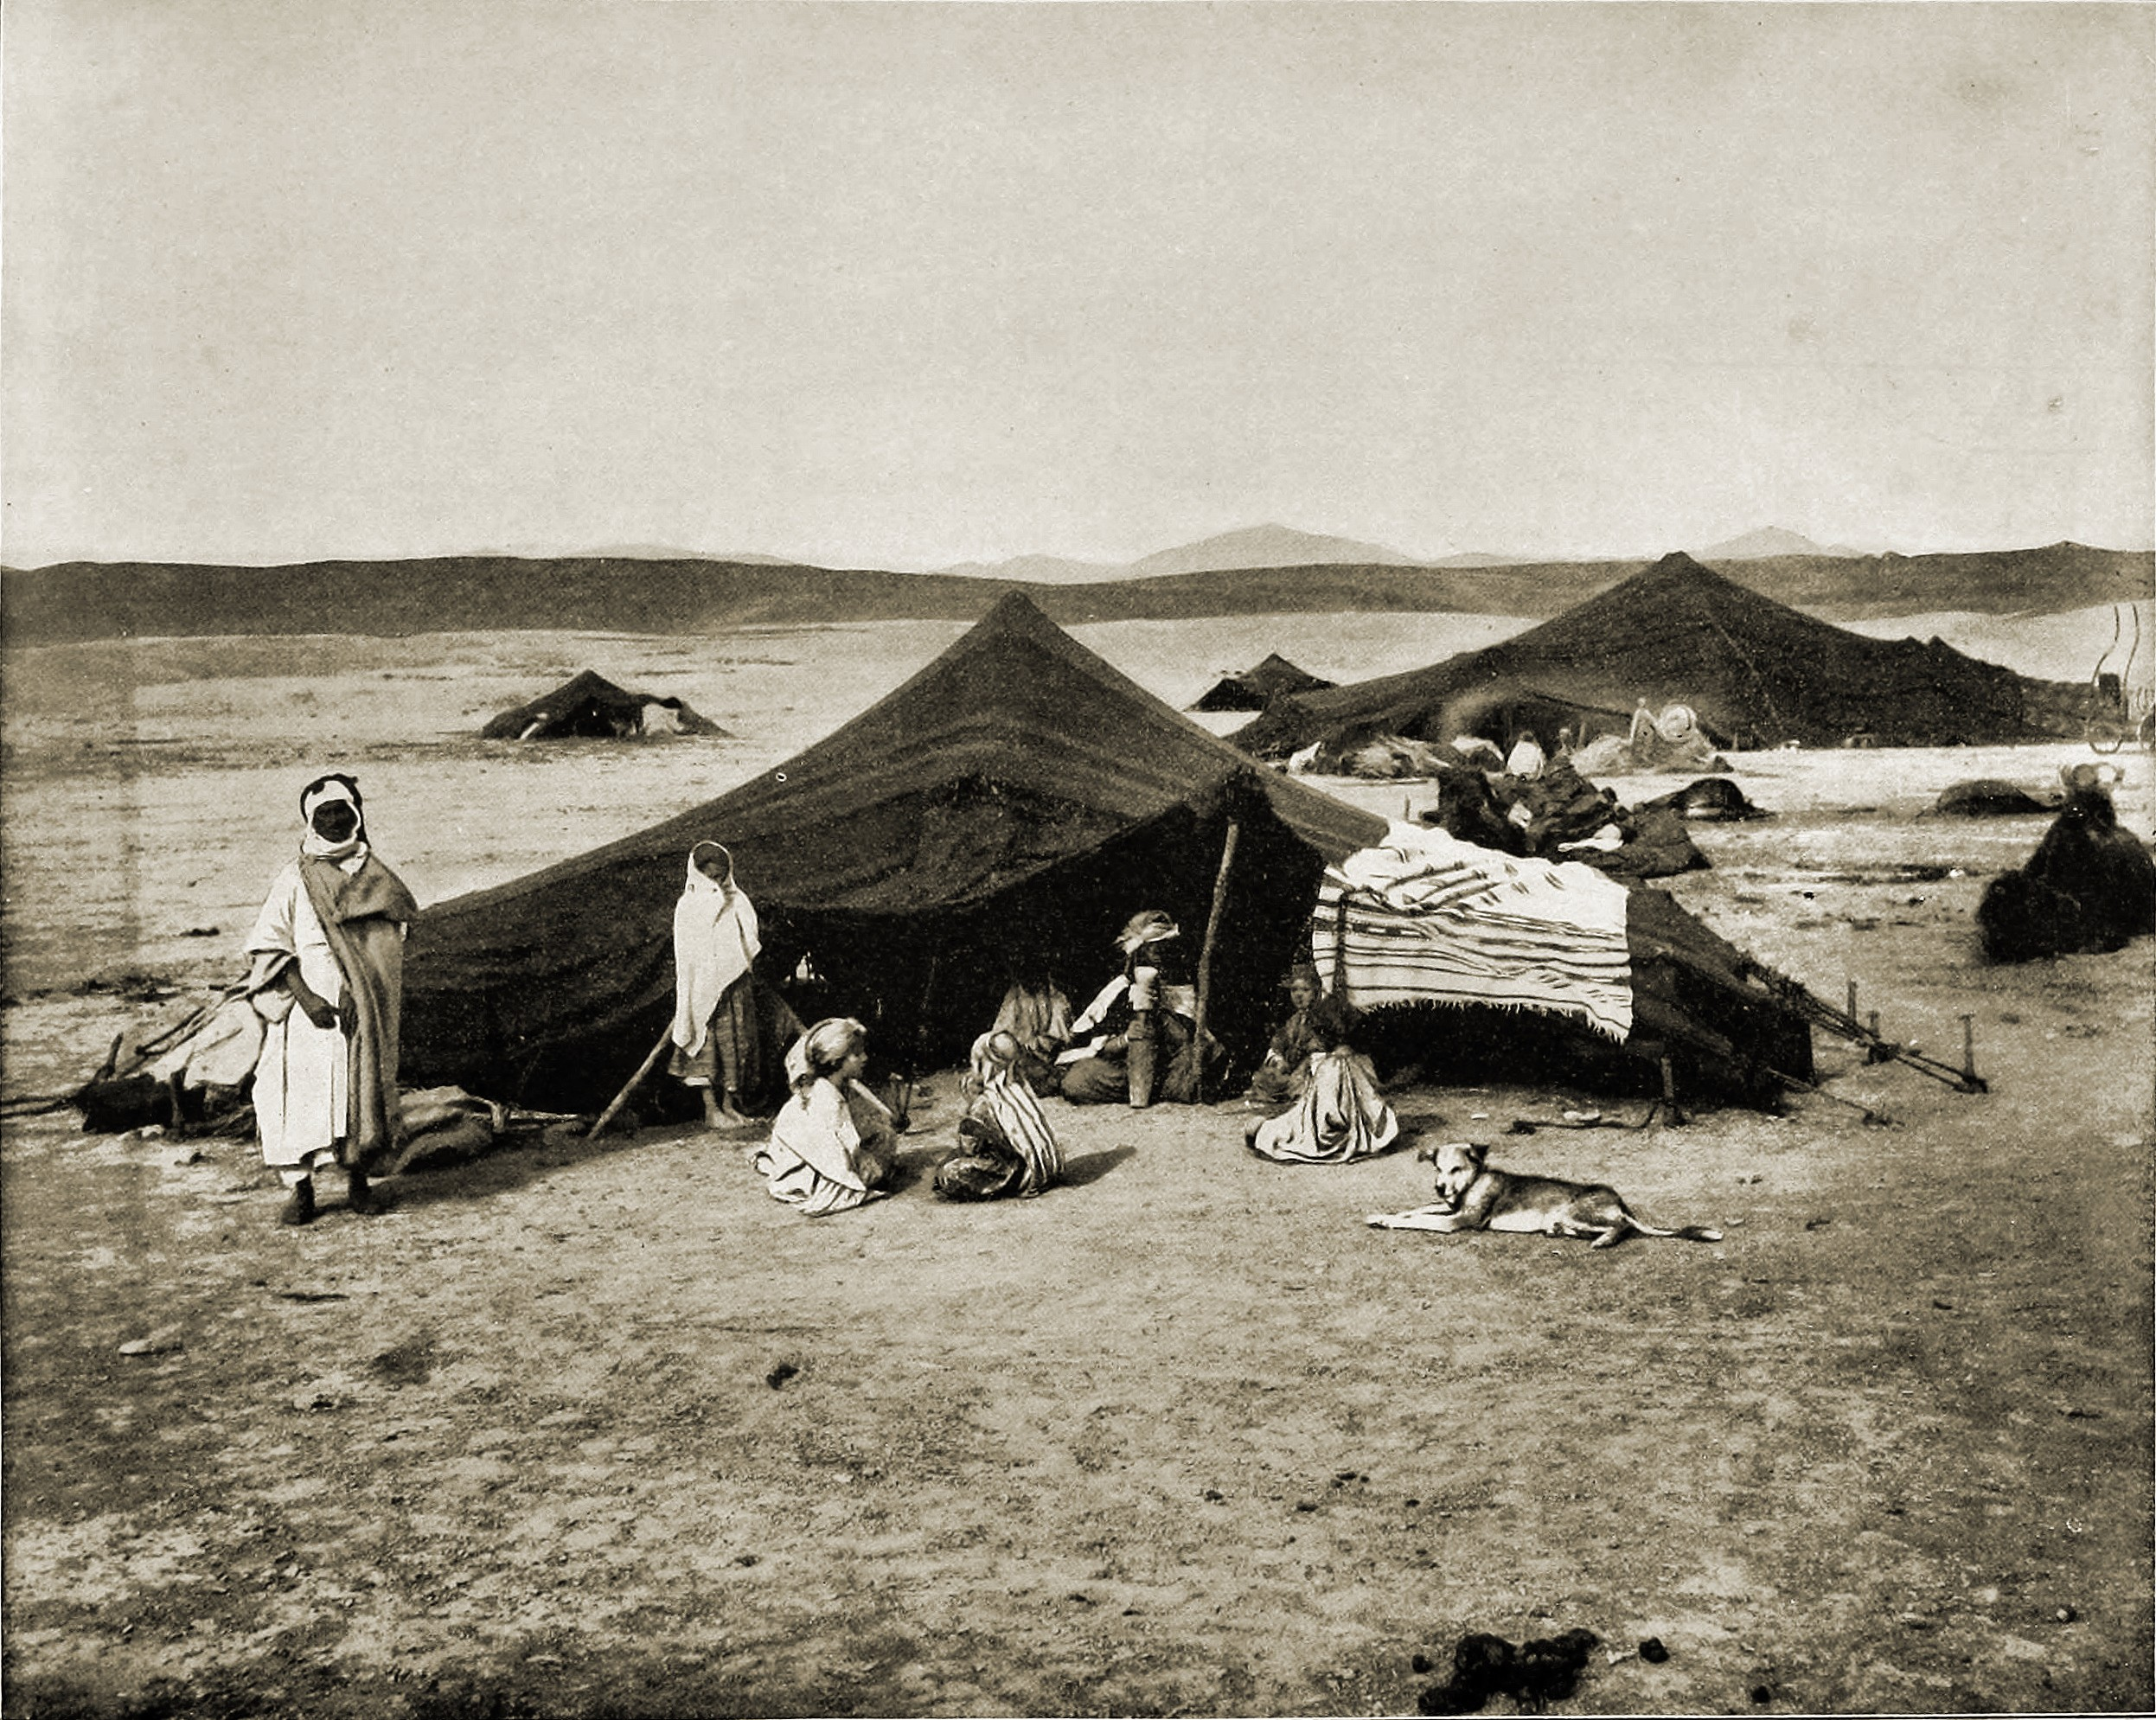 Bedouins on the Sahara Desert about 1892